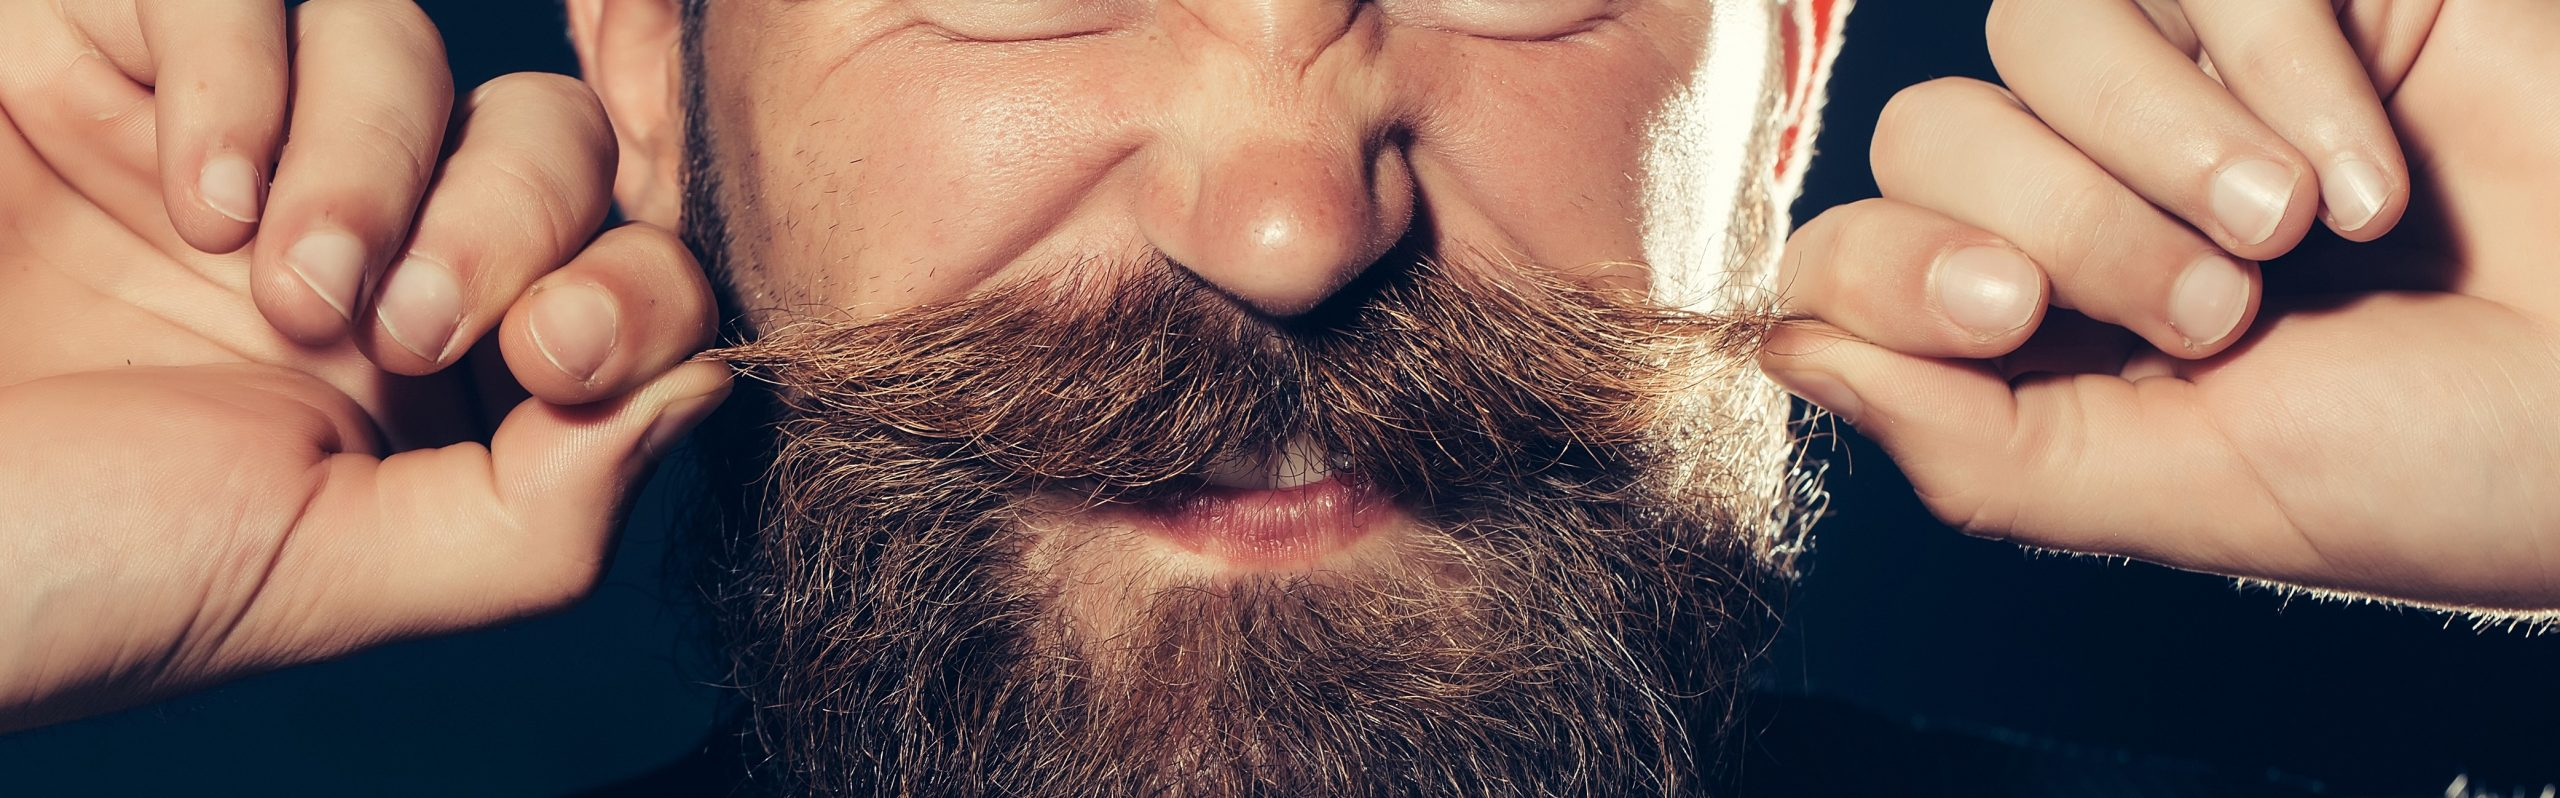 Men's Health and Why it is Often Overlooked